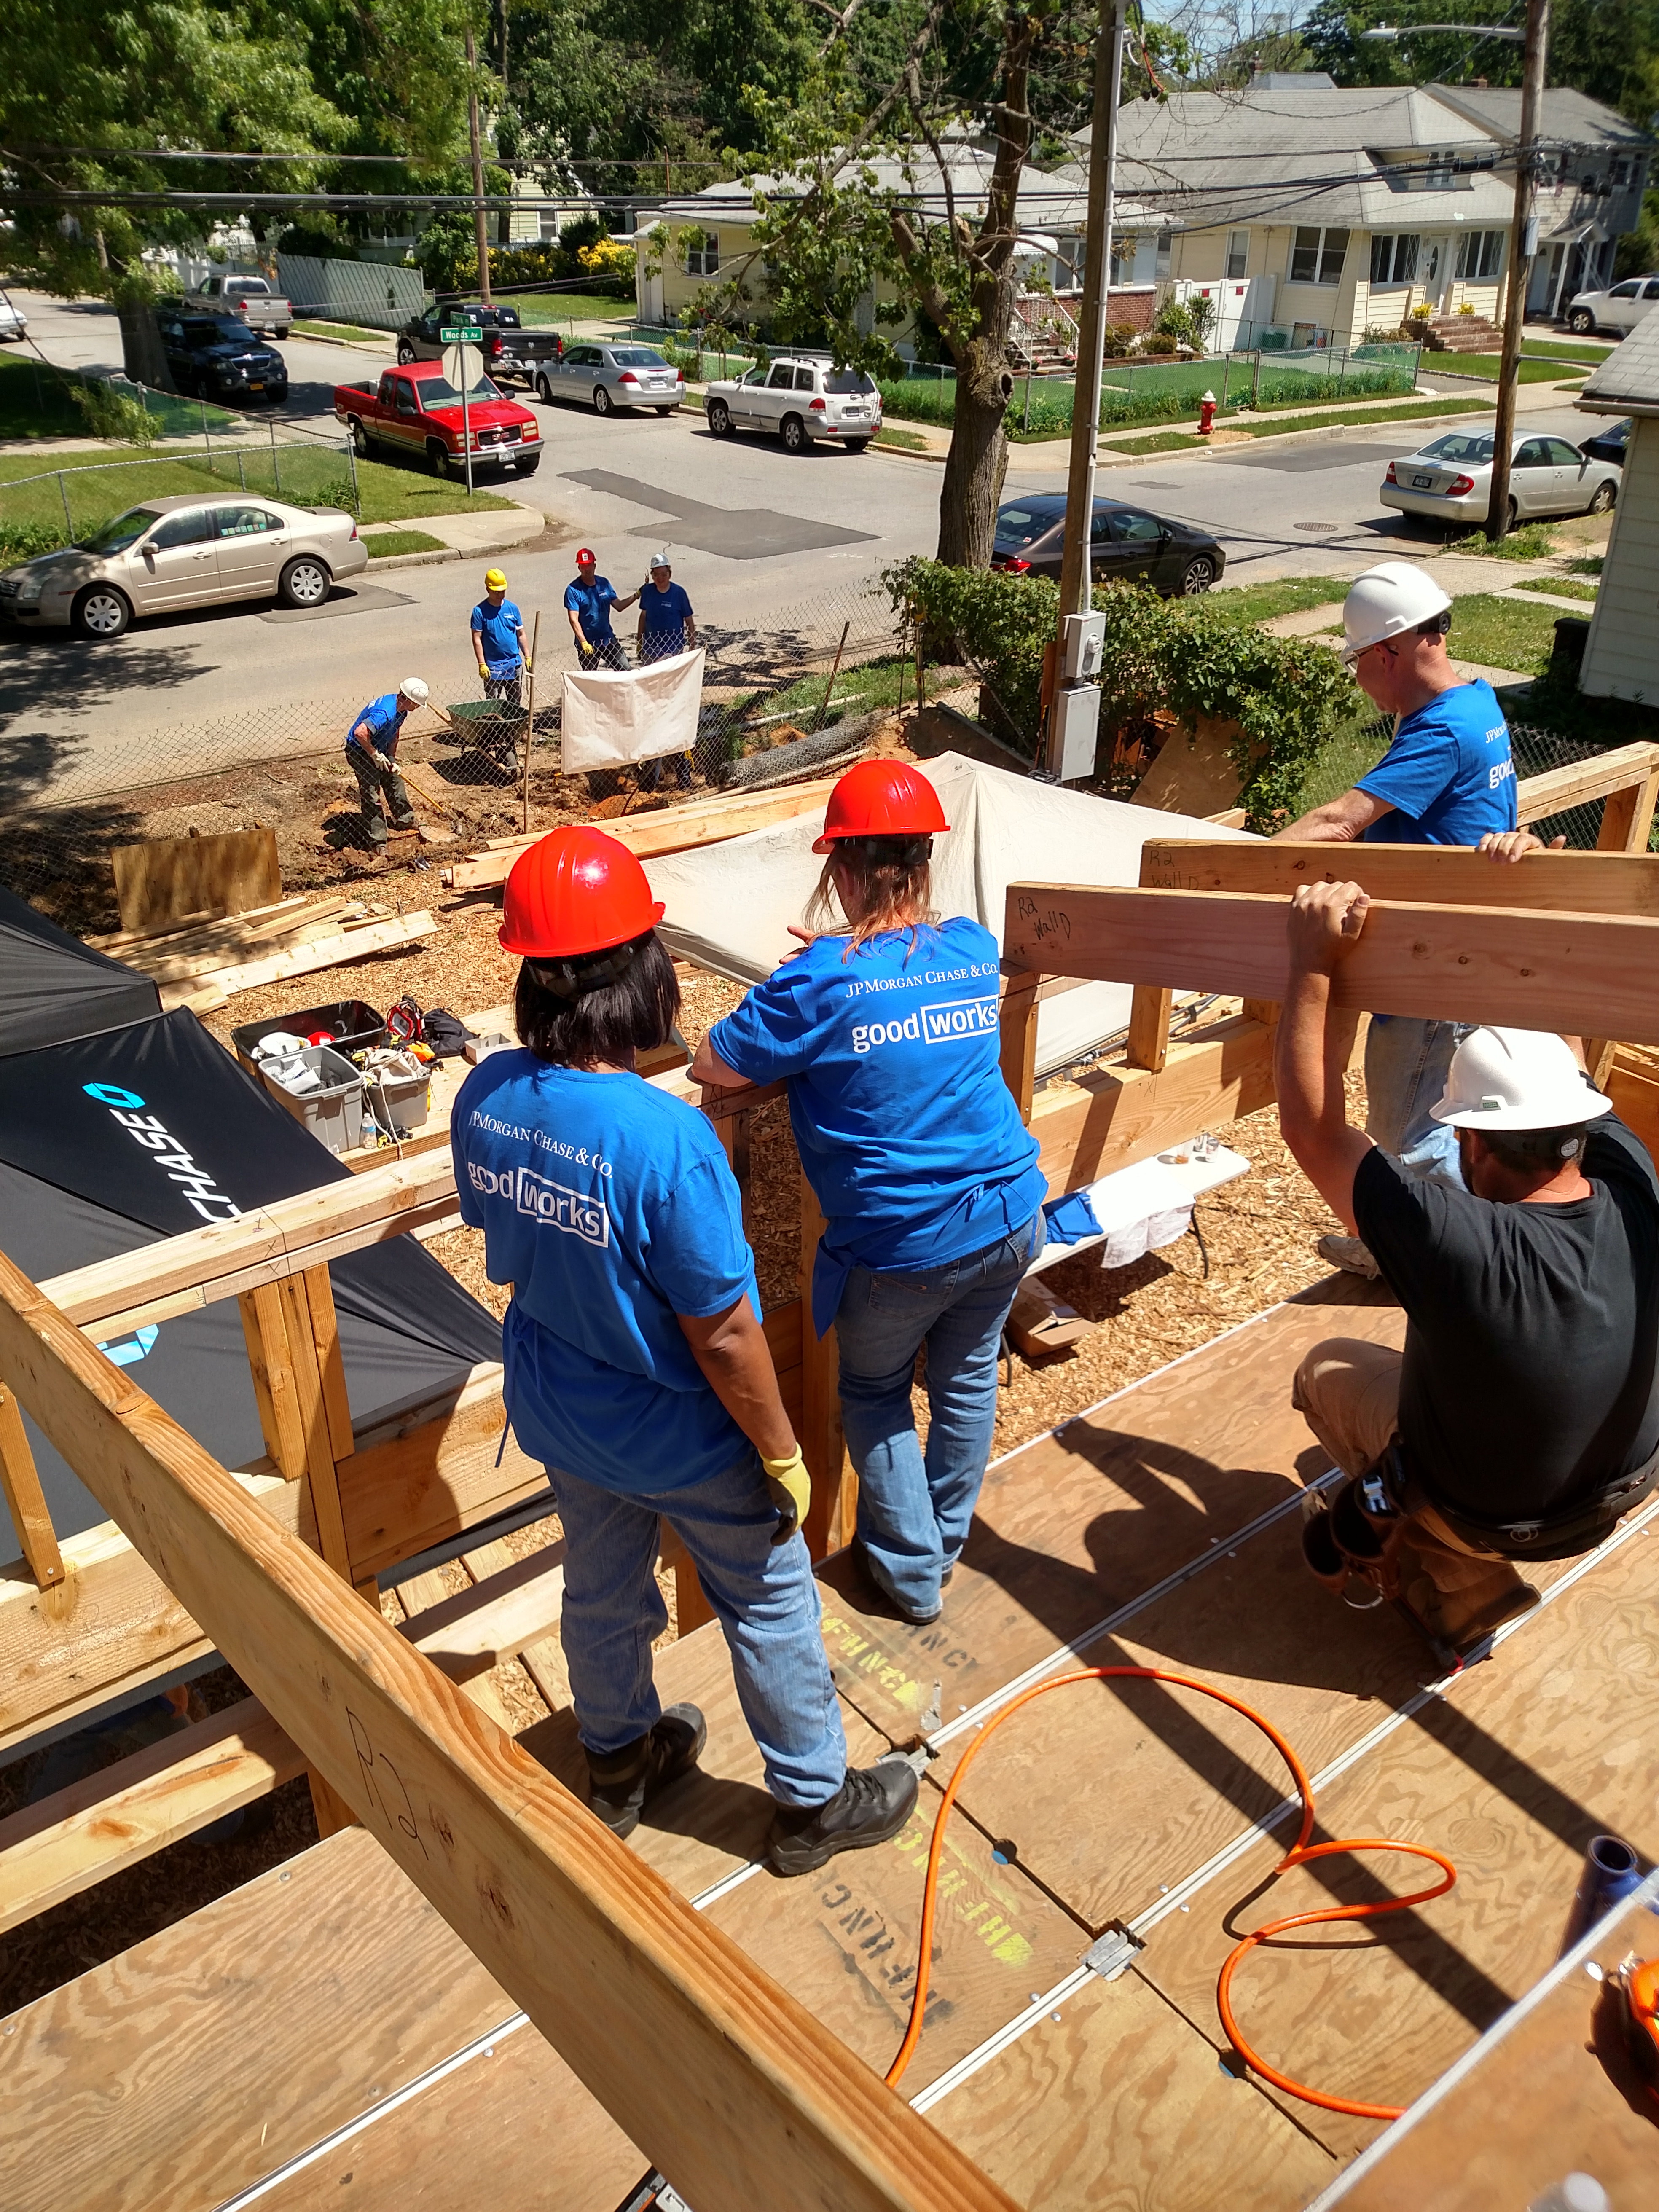 JPMorgan Chase Build Day